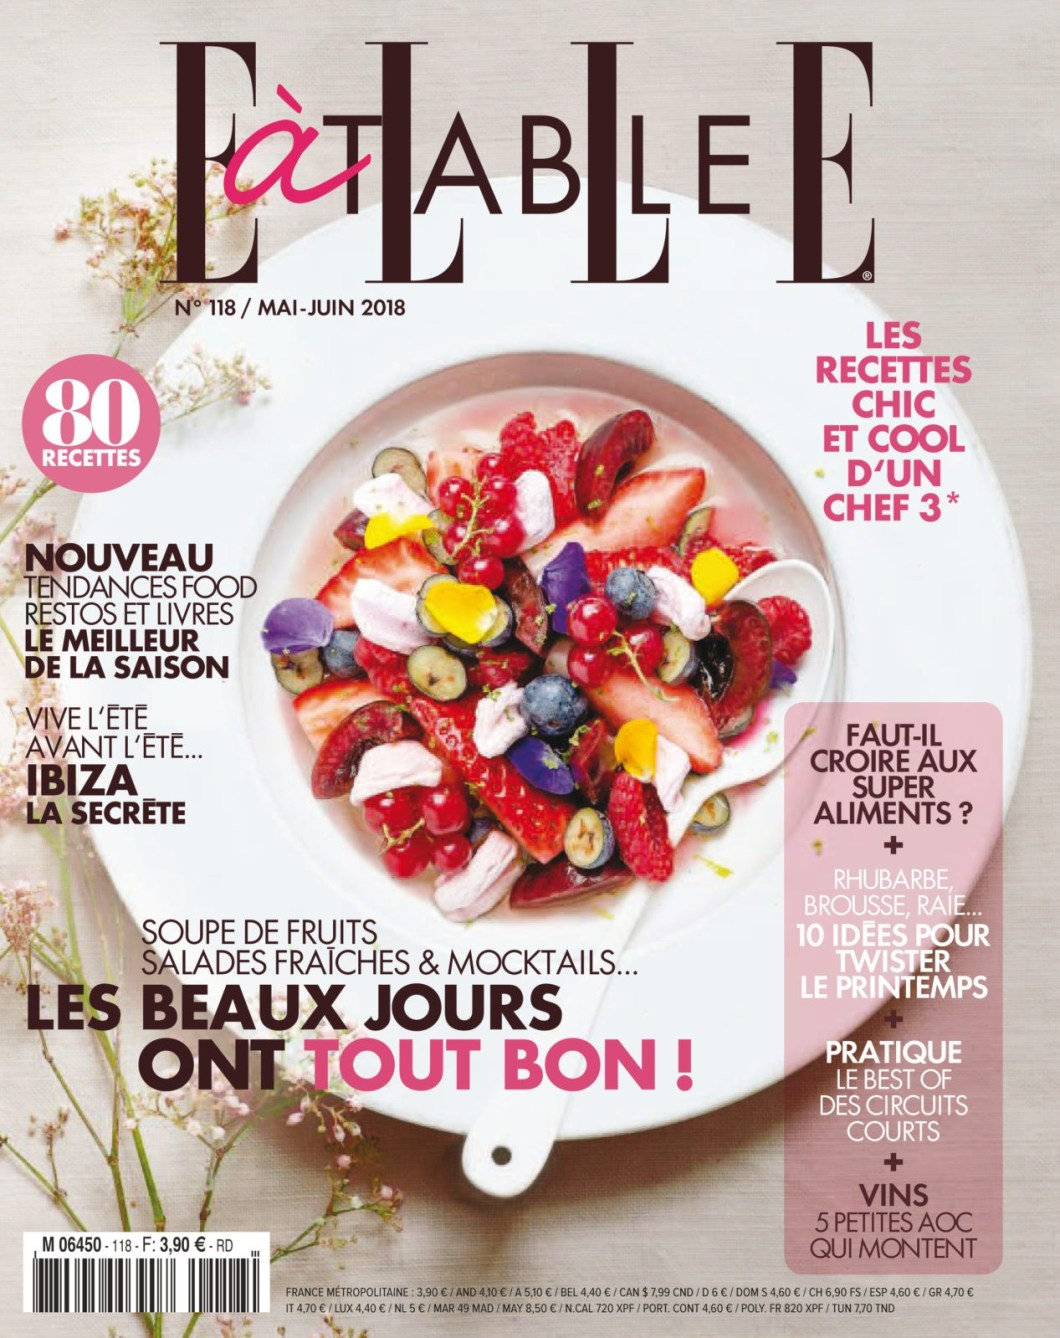 Elle à Table No. 118 - Mai/Juin 2018